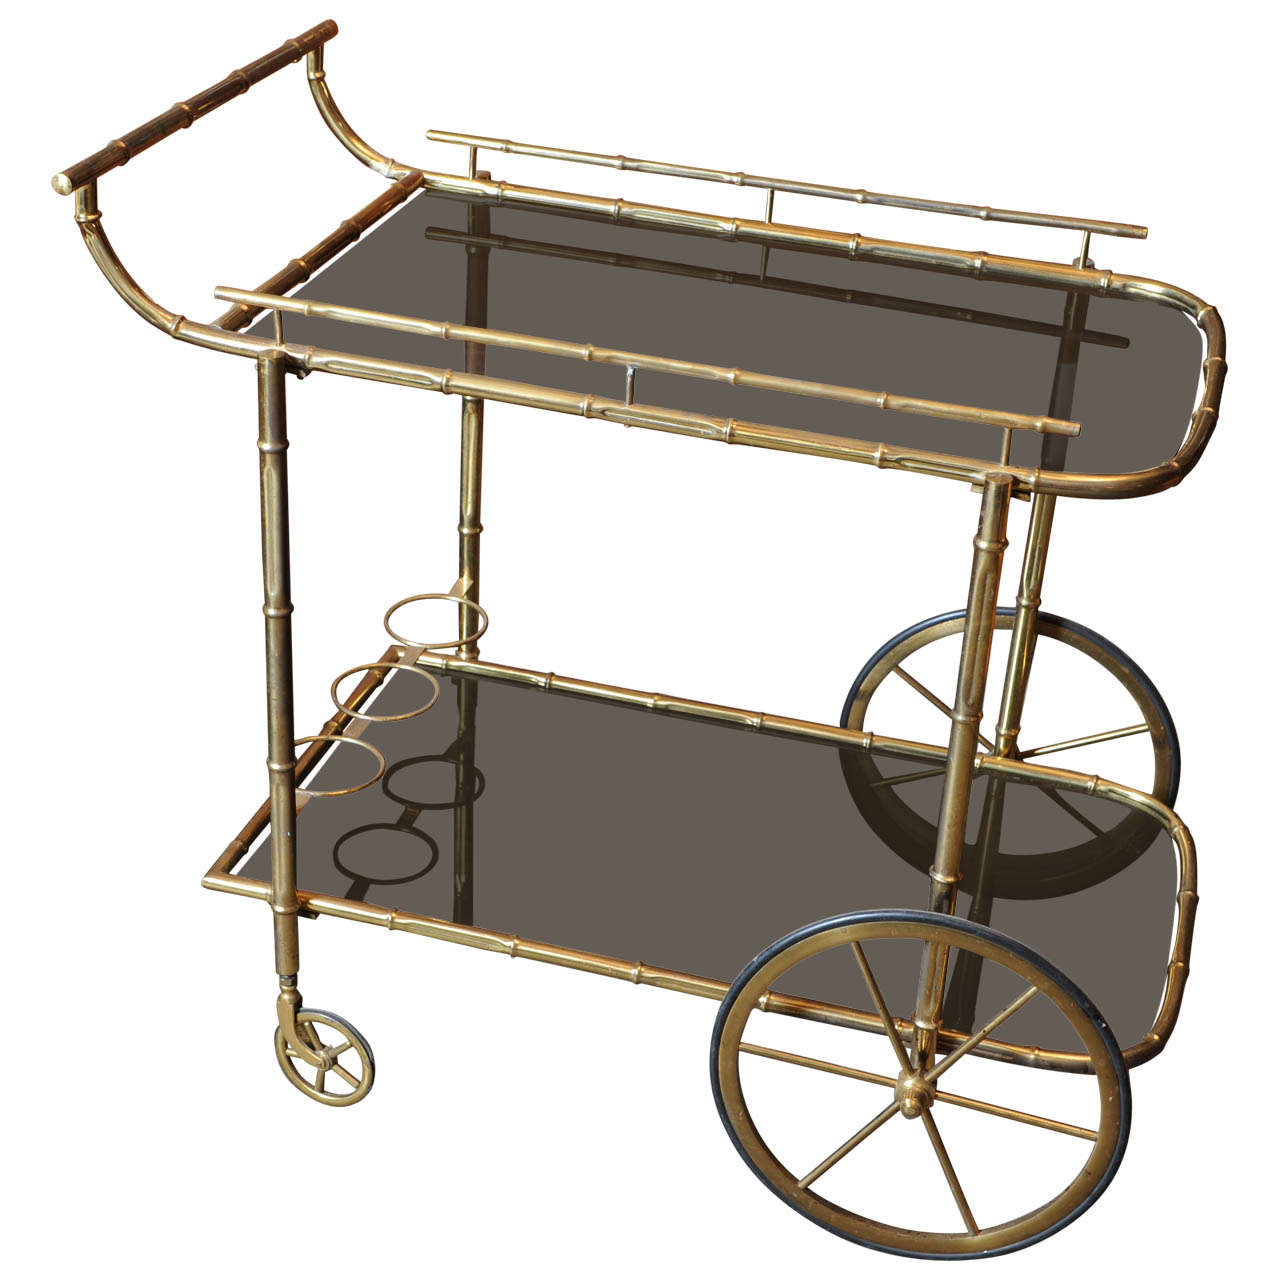 tea or drinks trolley bar cart attributed to jacques adnet . tea or drinks trolley bar cart attributed to jacques adnet at stdibs